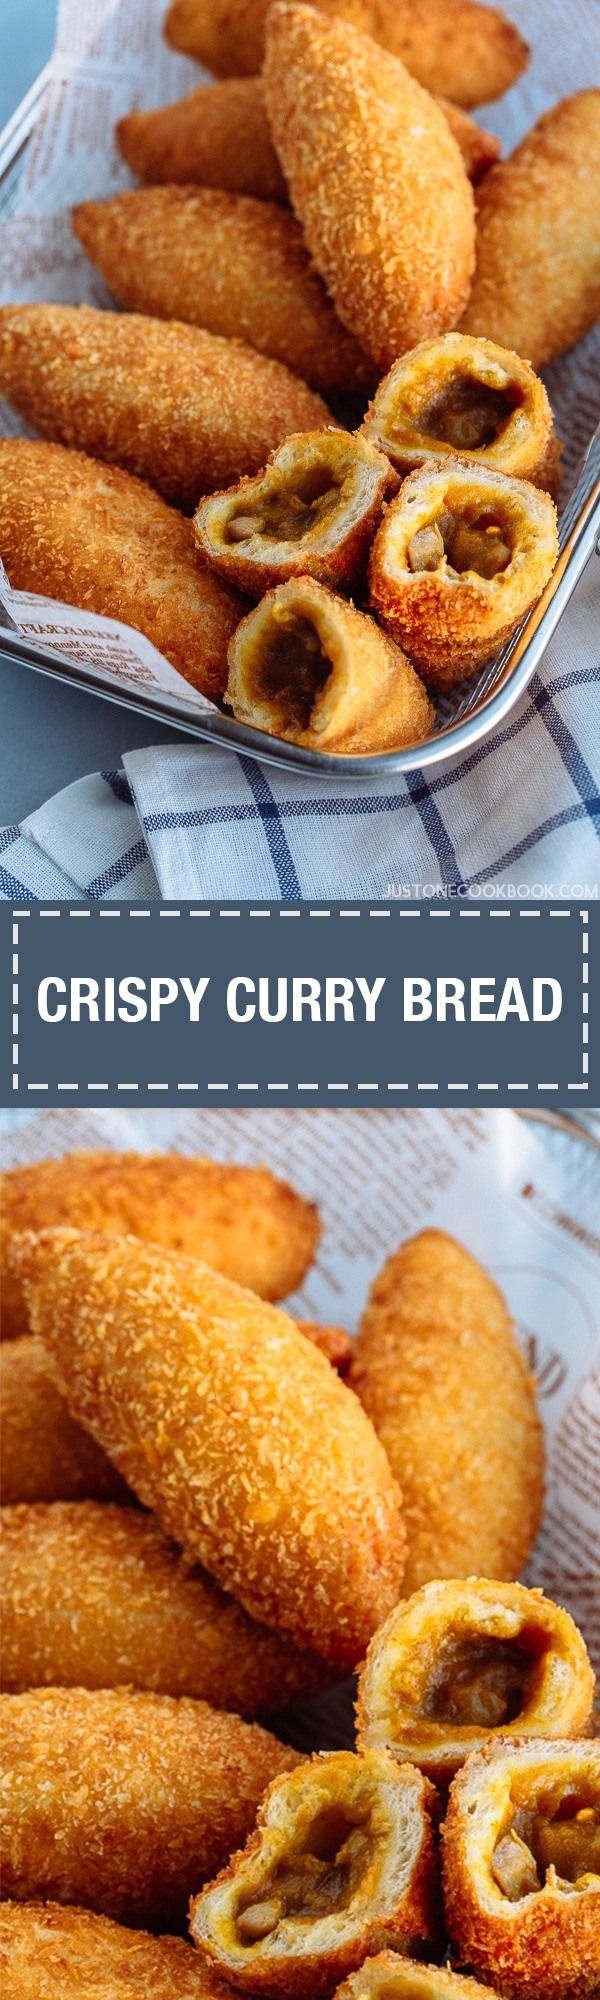 Curry Bread (Kare Pan) カレーパン - With a savory curry filling, a chewy, springy texture, and a light coating of crispy panko, Japanese Curry Bread or Kare Pan is the star of pastries at Japanese bakery shops. If you are a huge fan of Japanese curry, you have to make this insanely delicious bread bun at home.#CurryPan #CurryBread #friedbread #Pan #Bread #カレーパン #KarePan #curry | Easy Japanese Recipes at JustOneCookbook.com